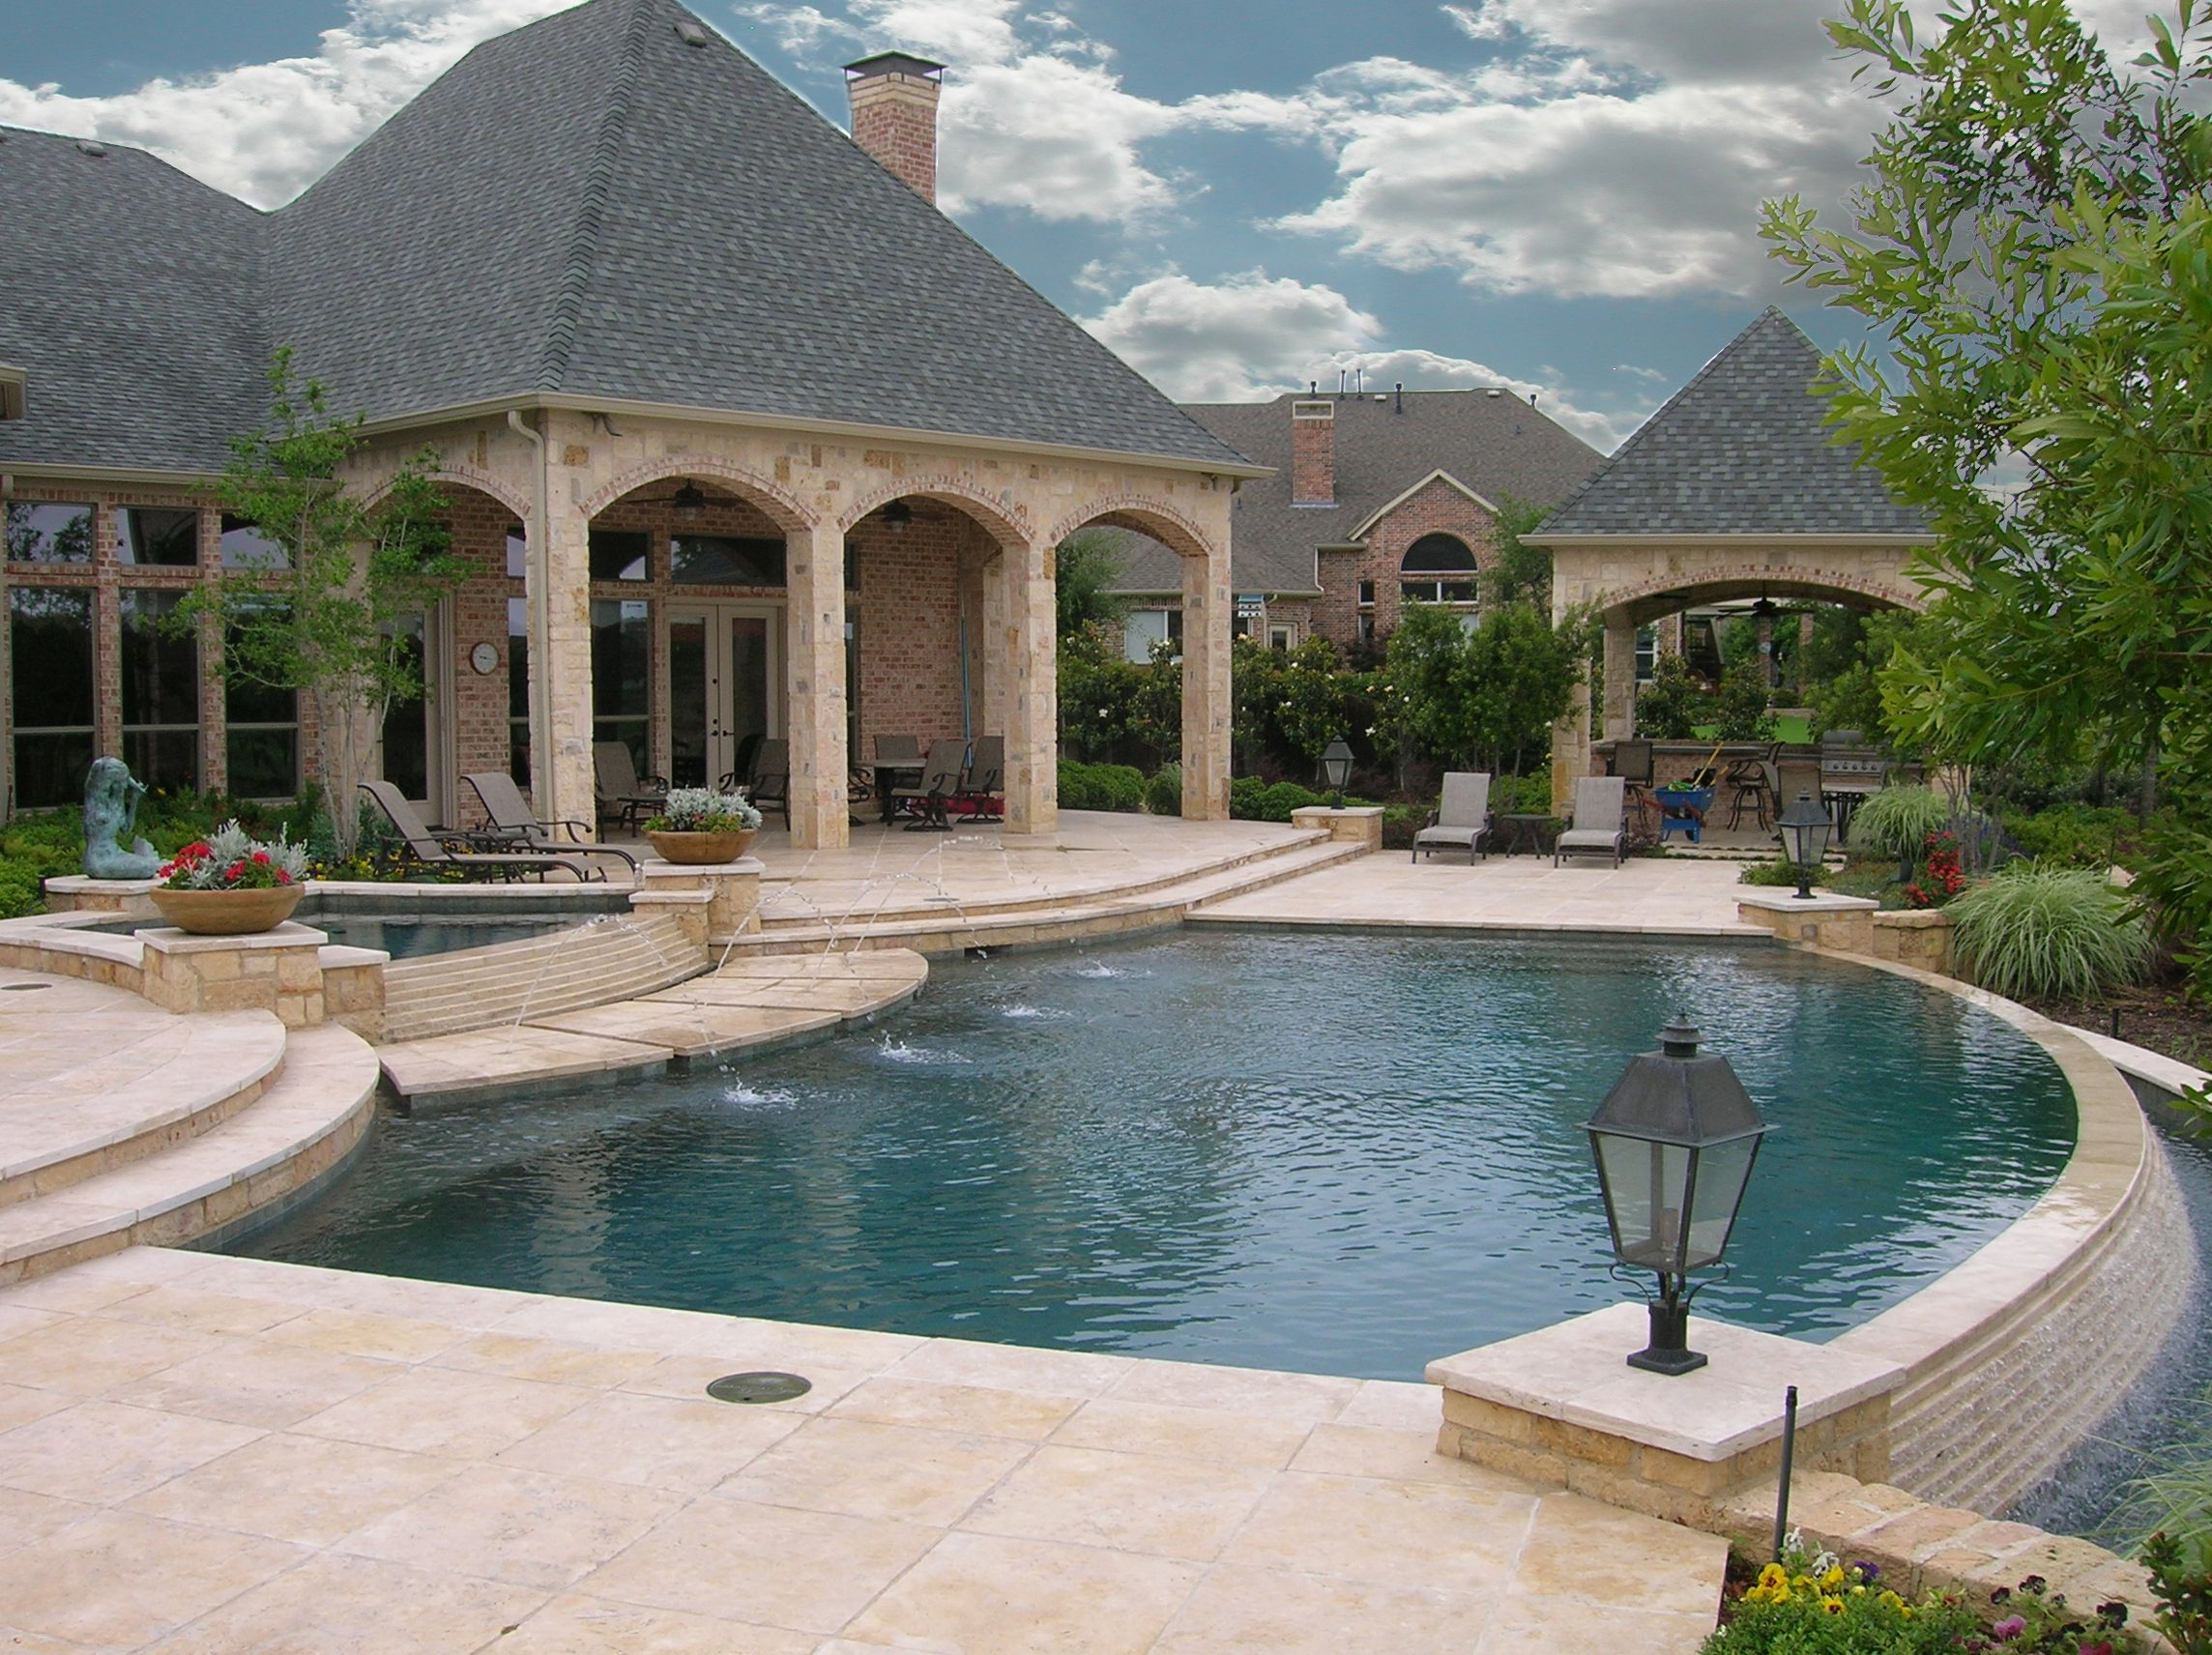 Superior Leisure Living Pools, Frisco, TX Calling For My Own Backyard Get Away